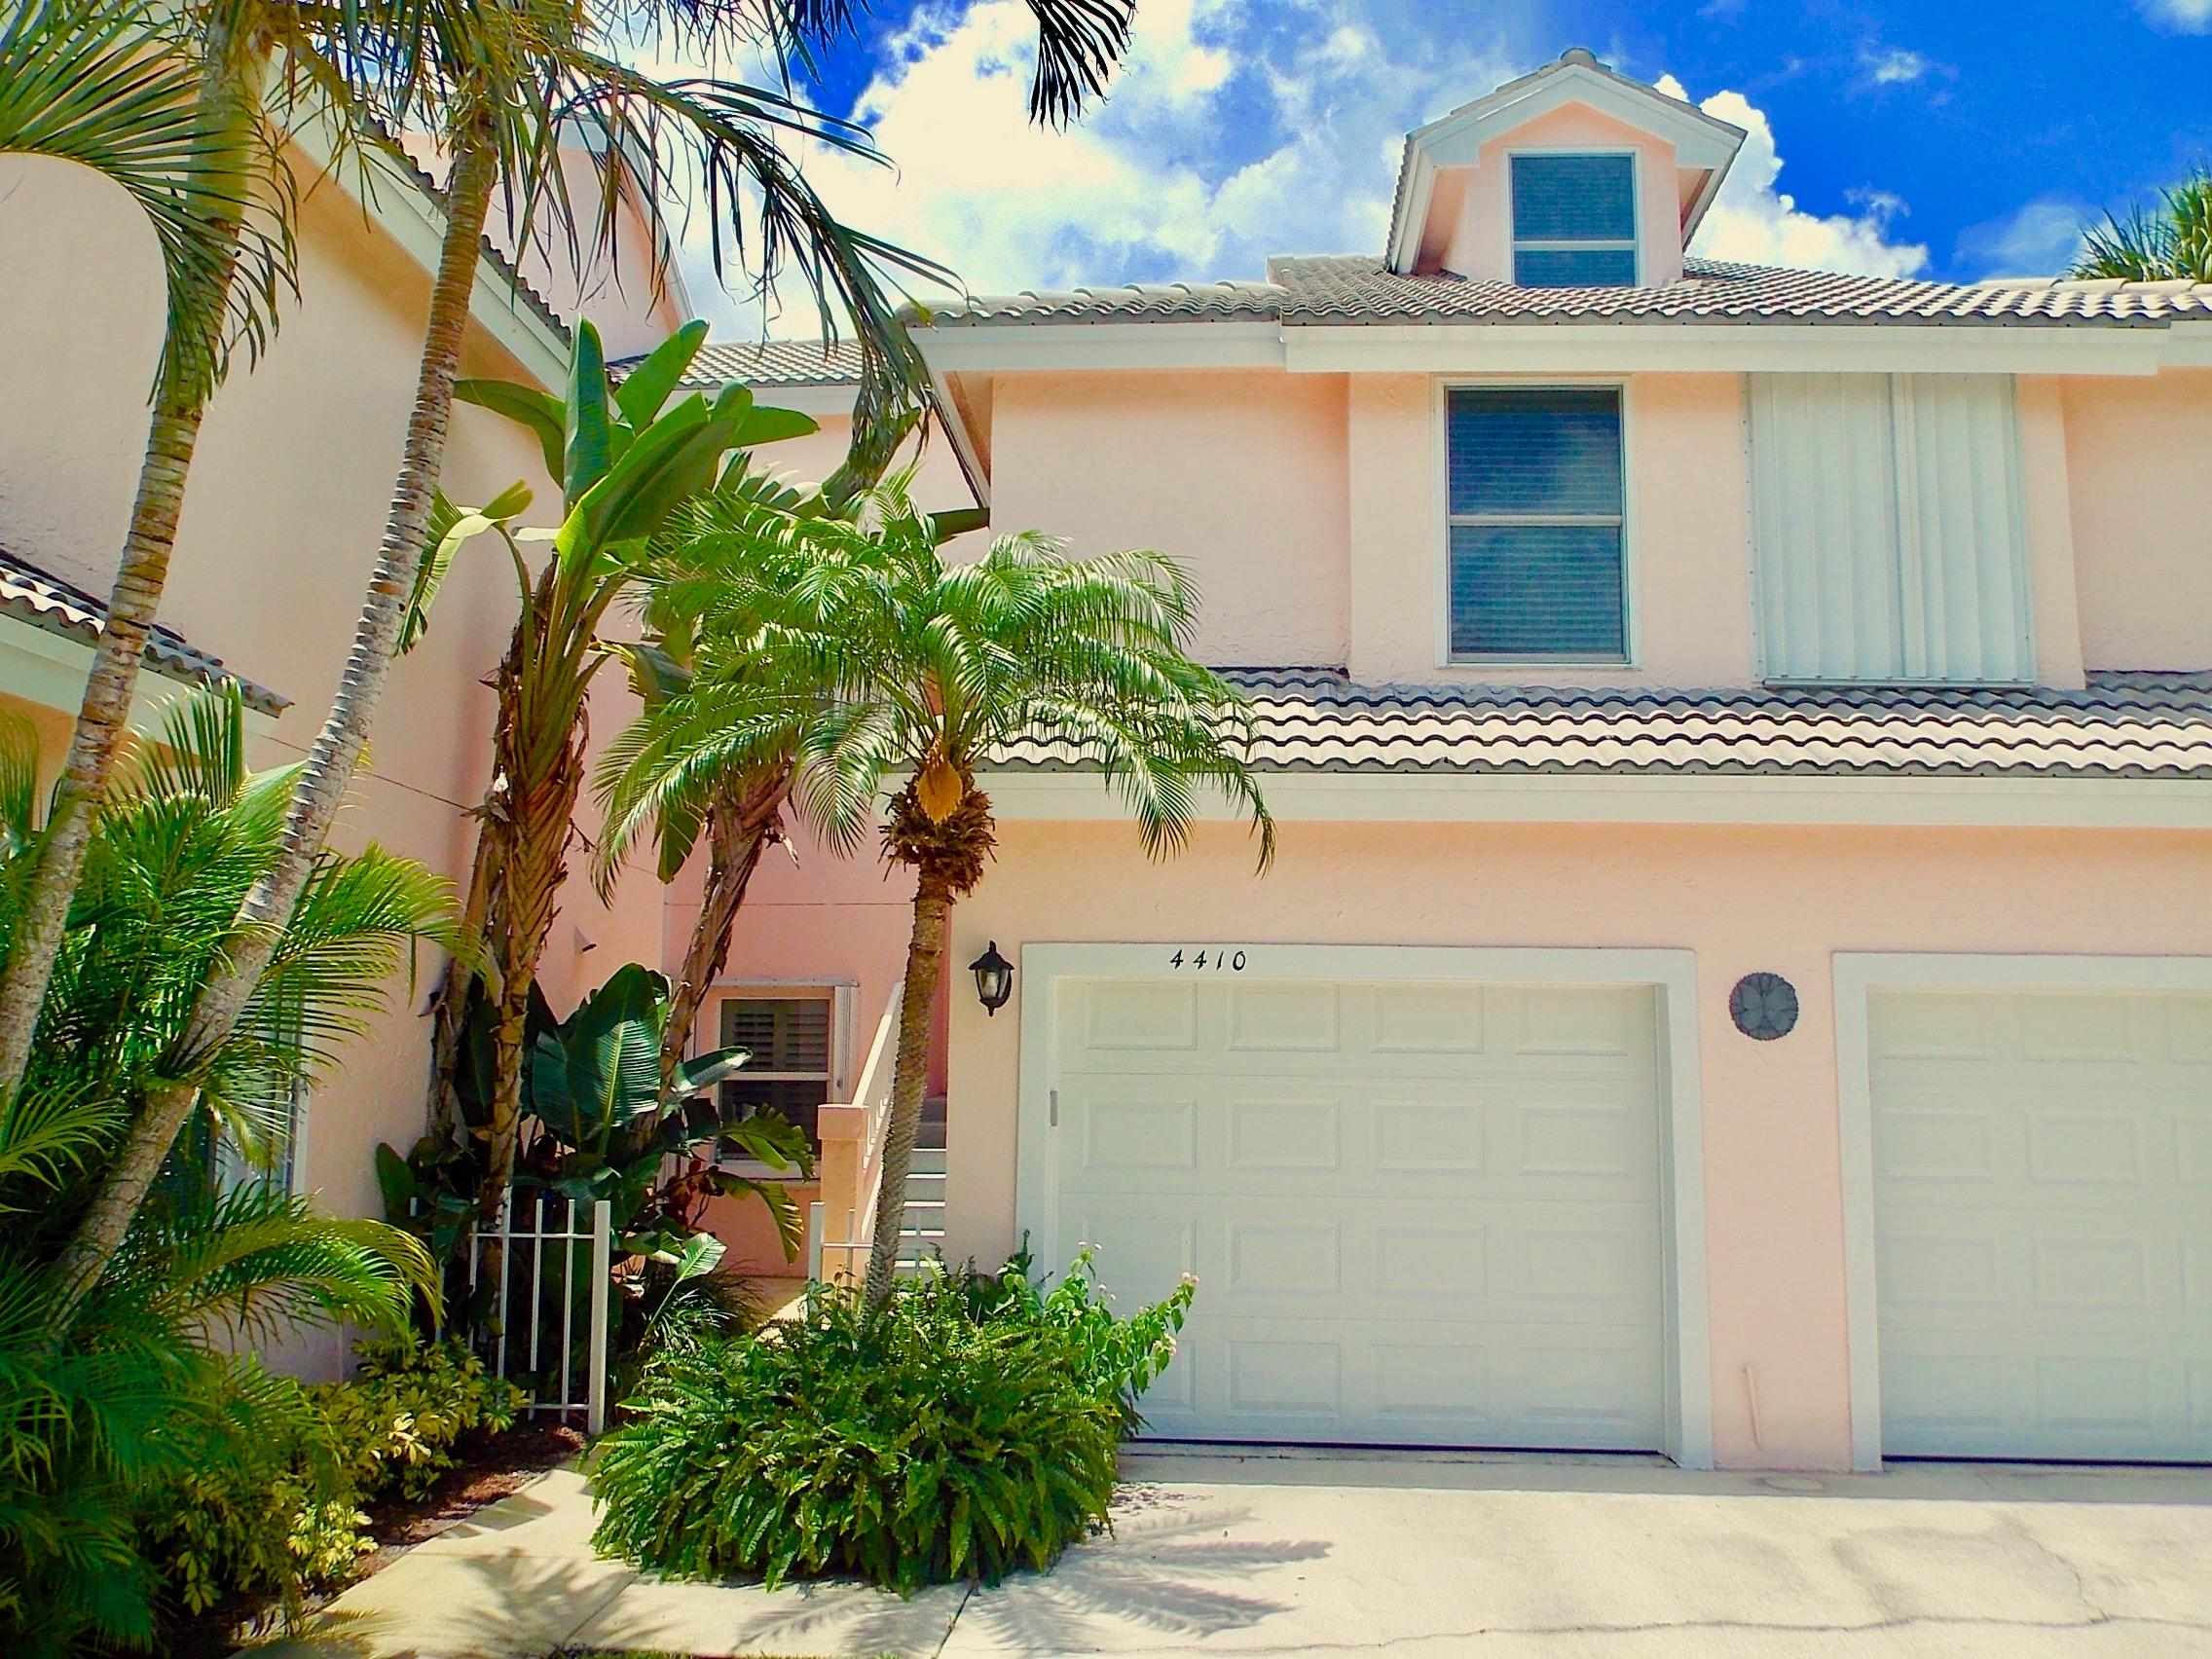 4410 Fairway Drive, Jupiter, Florida 33477, 2 Bedrooms Bedrooms, ,2 BathroomsBathrooms,F,Condominium,Fairway,RX-10437643